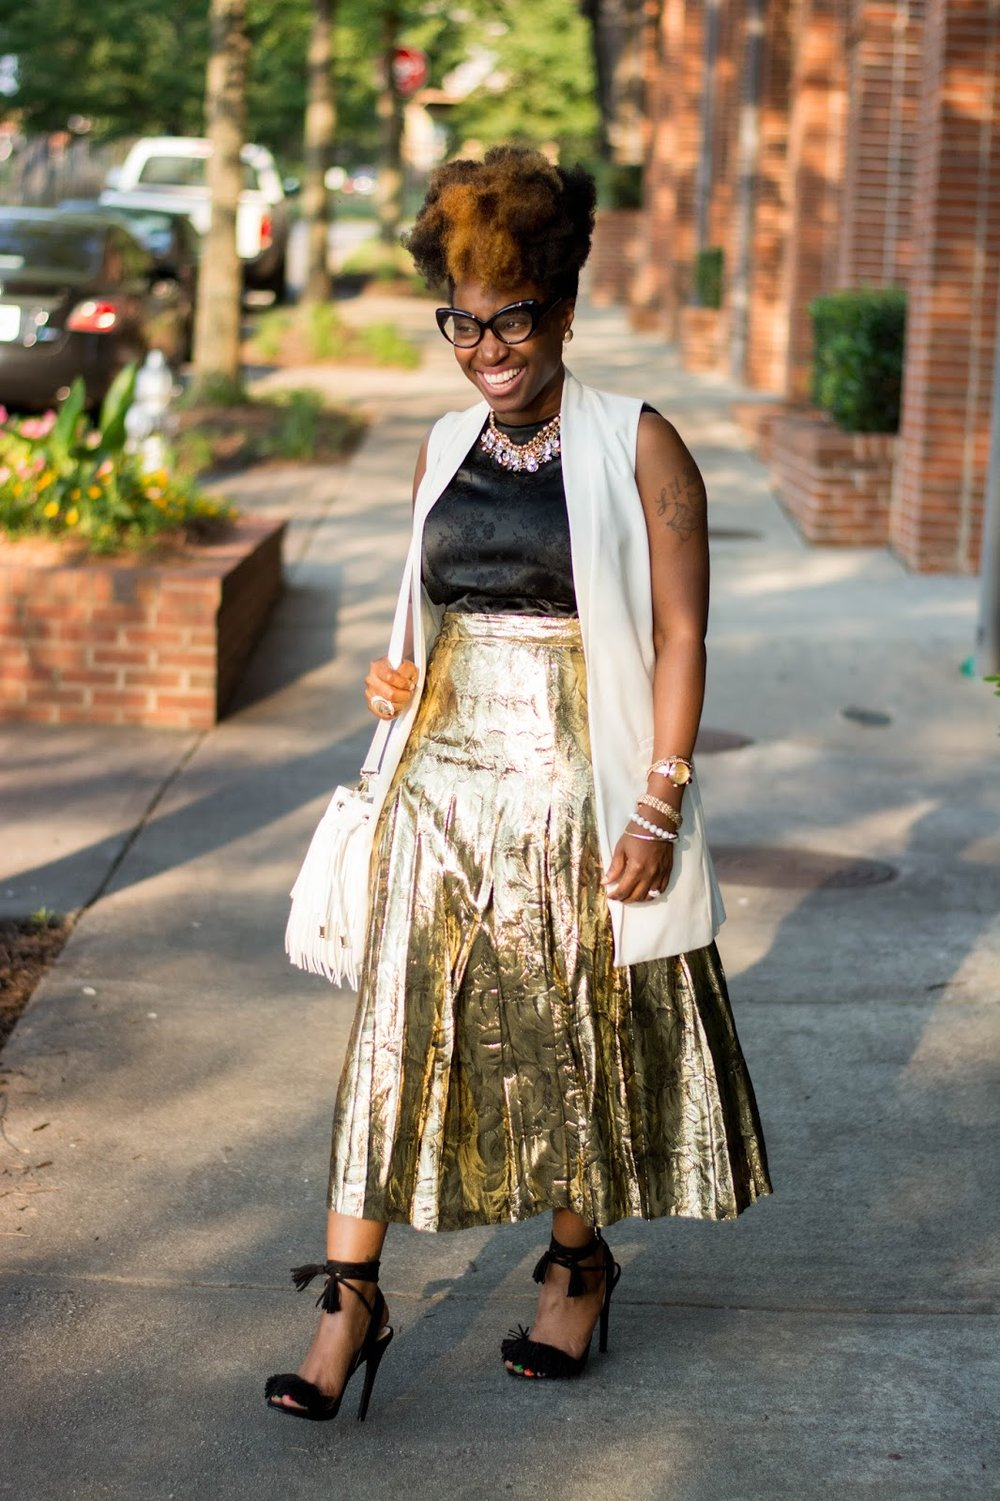 Atlanta style blogger, style blogger, Atlanta stylist, Street style, Vintage fashion, Metallic gold skirt, Fringe sandals, Cream vest, Target style, Thrifted fashion, Shoedazzle, Justfab, Atlanta influencer, Style influencer, fringe bucket handbag, Black girls rock, Black blogger, Browngirls, Natural Hair styles, Black girls killing it, Black girl fashion, Fashion style, Wardrobe stylist, Atlanta street style, Atlanta style, Forever21